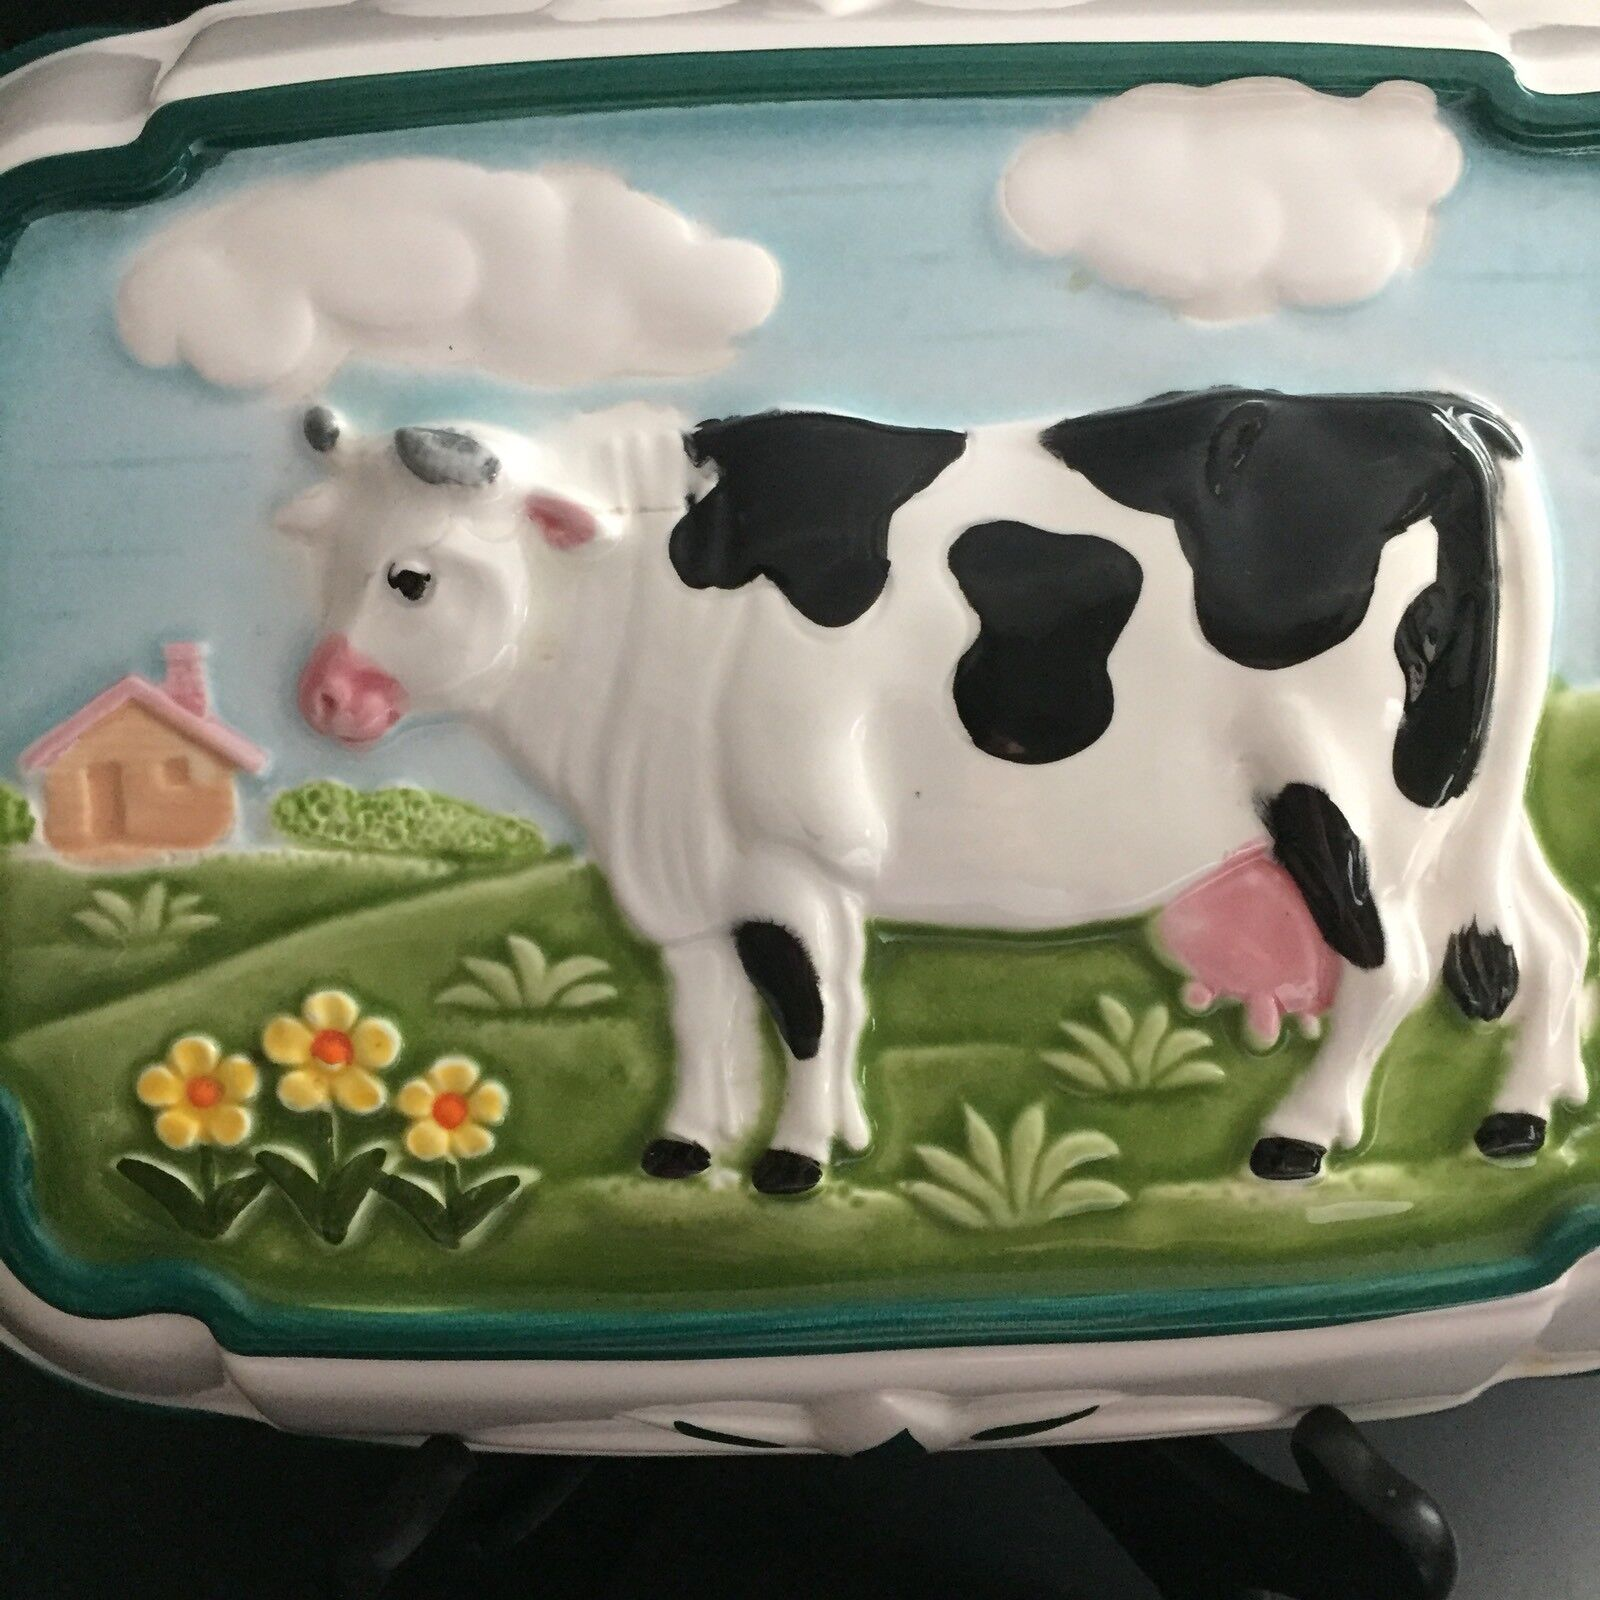 1 of 6 colorful cow kitchen decor molded glass dish green trim milk cow in pasture 2 of 6 colorful cow kitchen decor